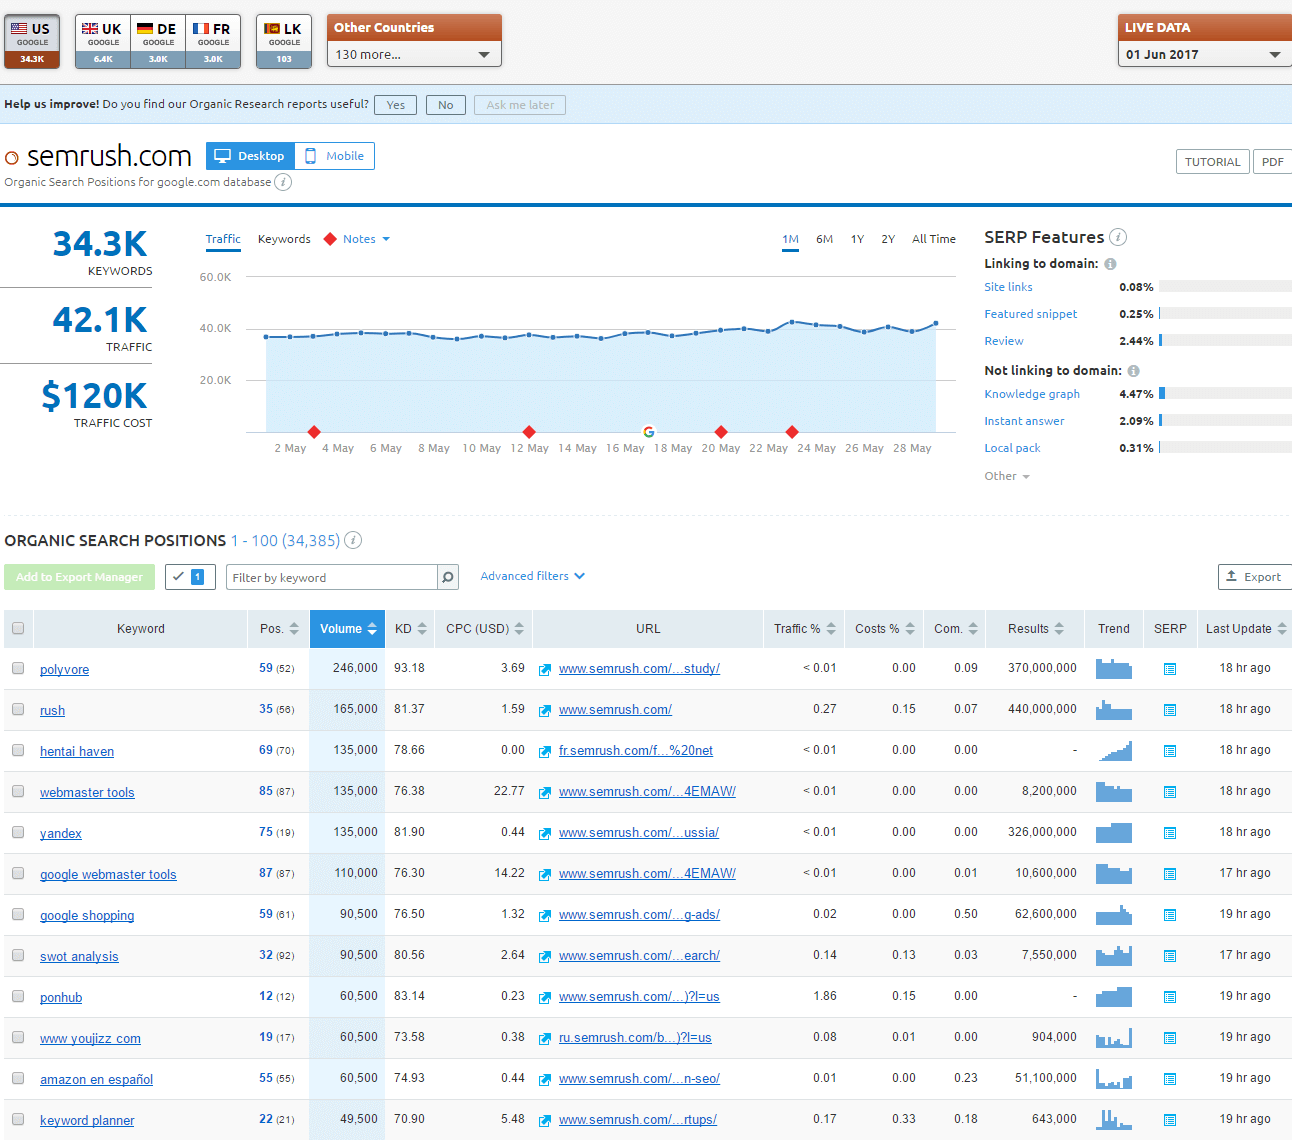 semrush.com Organic Search Positions